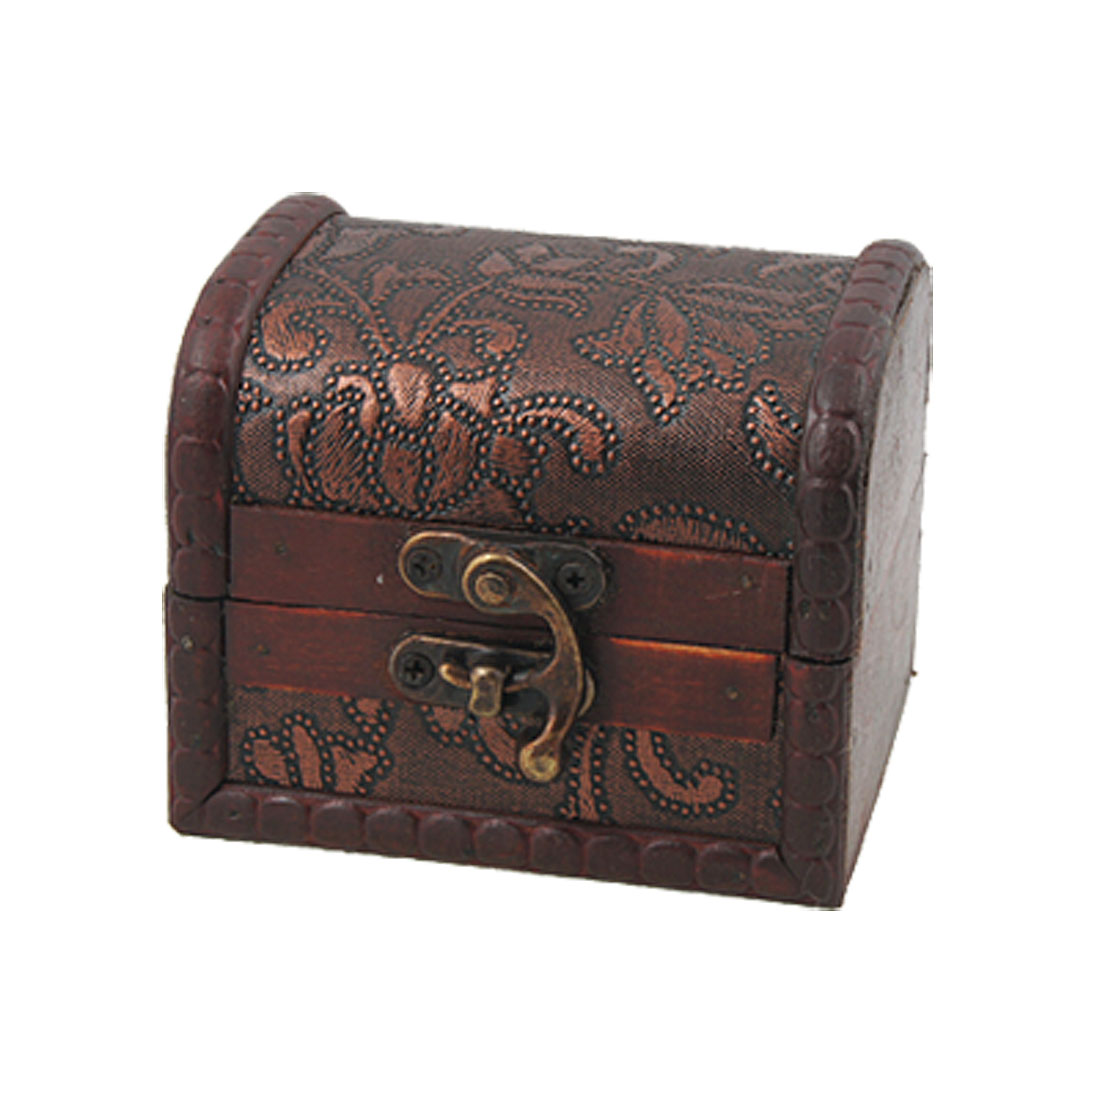 Decorative Buckle Flower Embossed Craft Wooden Jewelry Box